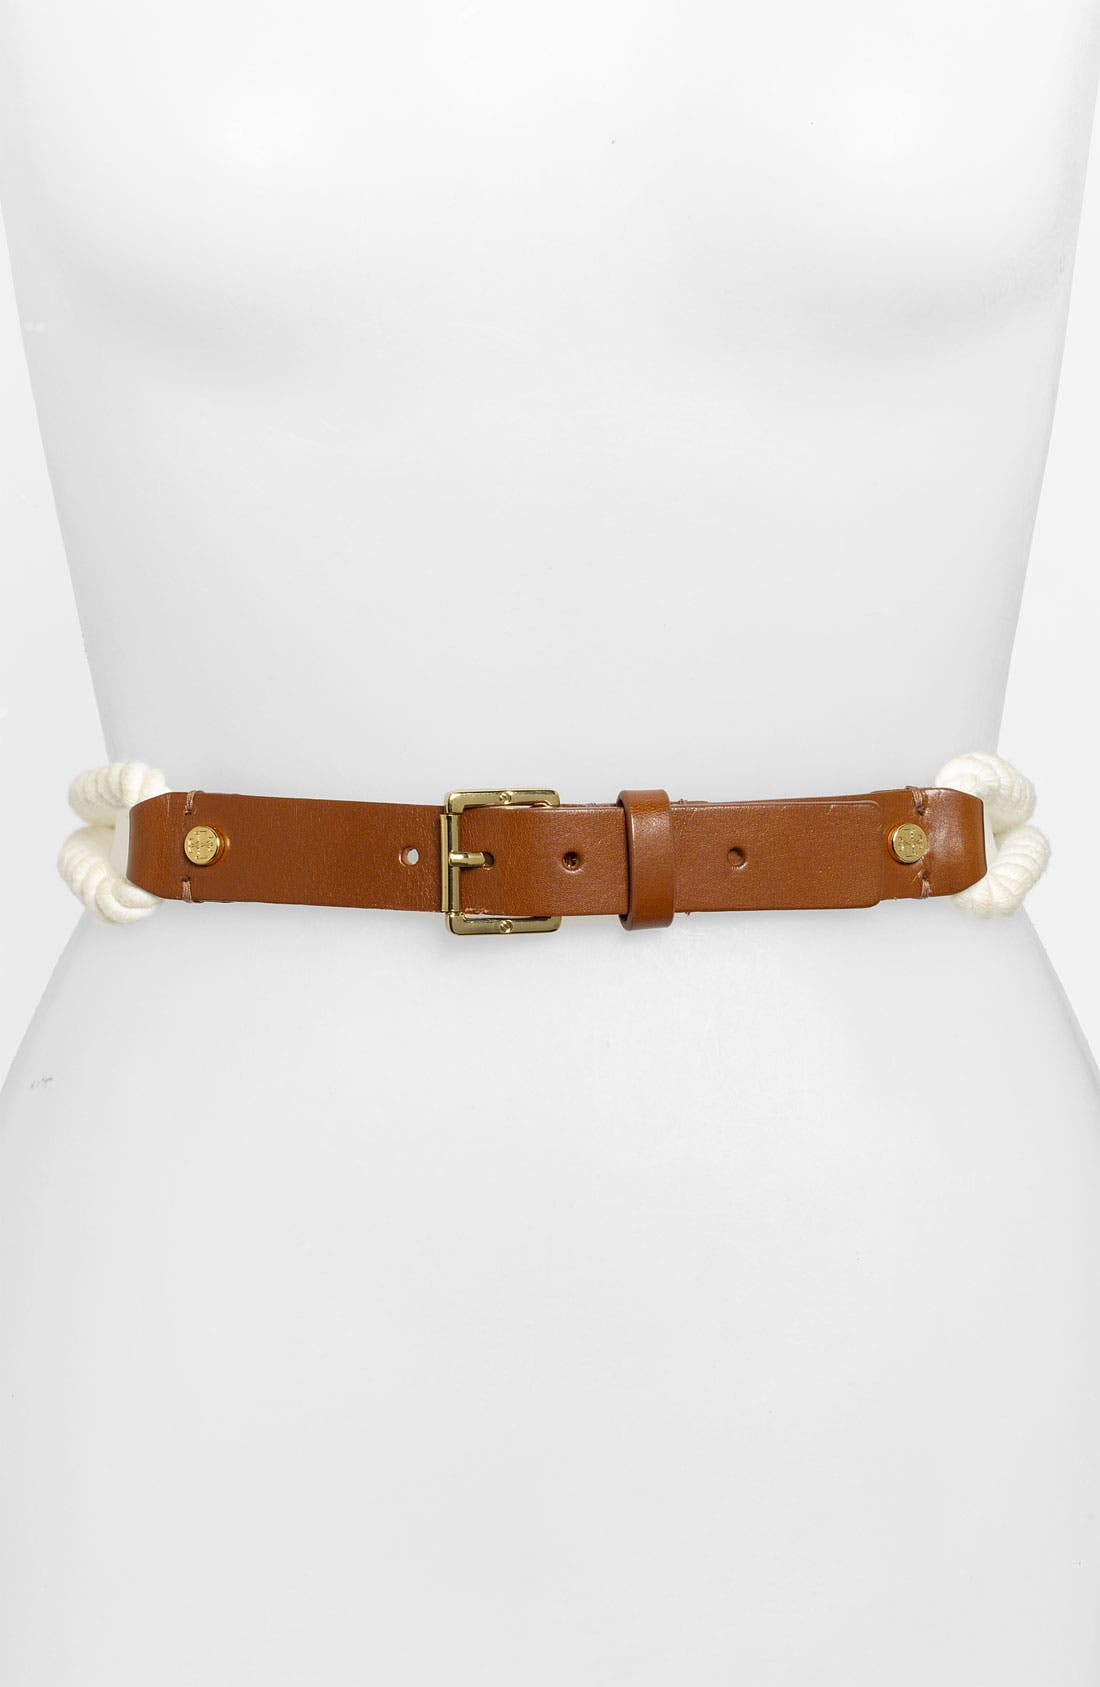 Alternate Image 1 Selected - Tory Burch Leather & Rope Belt